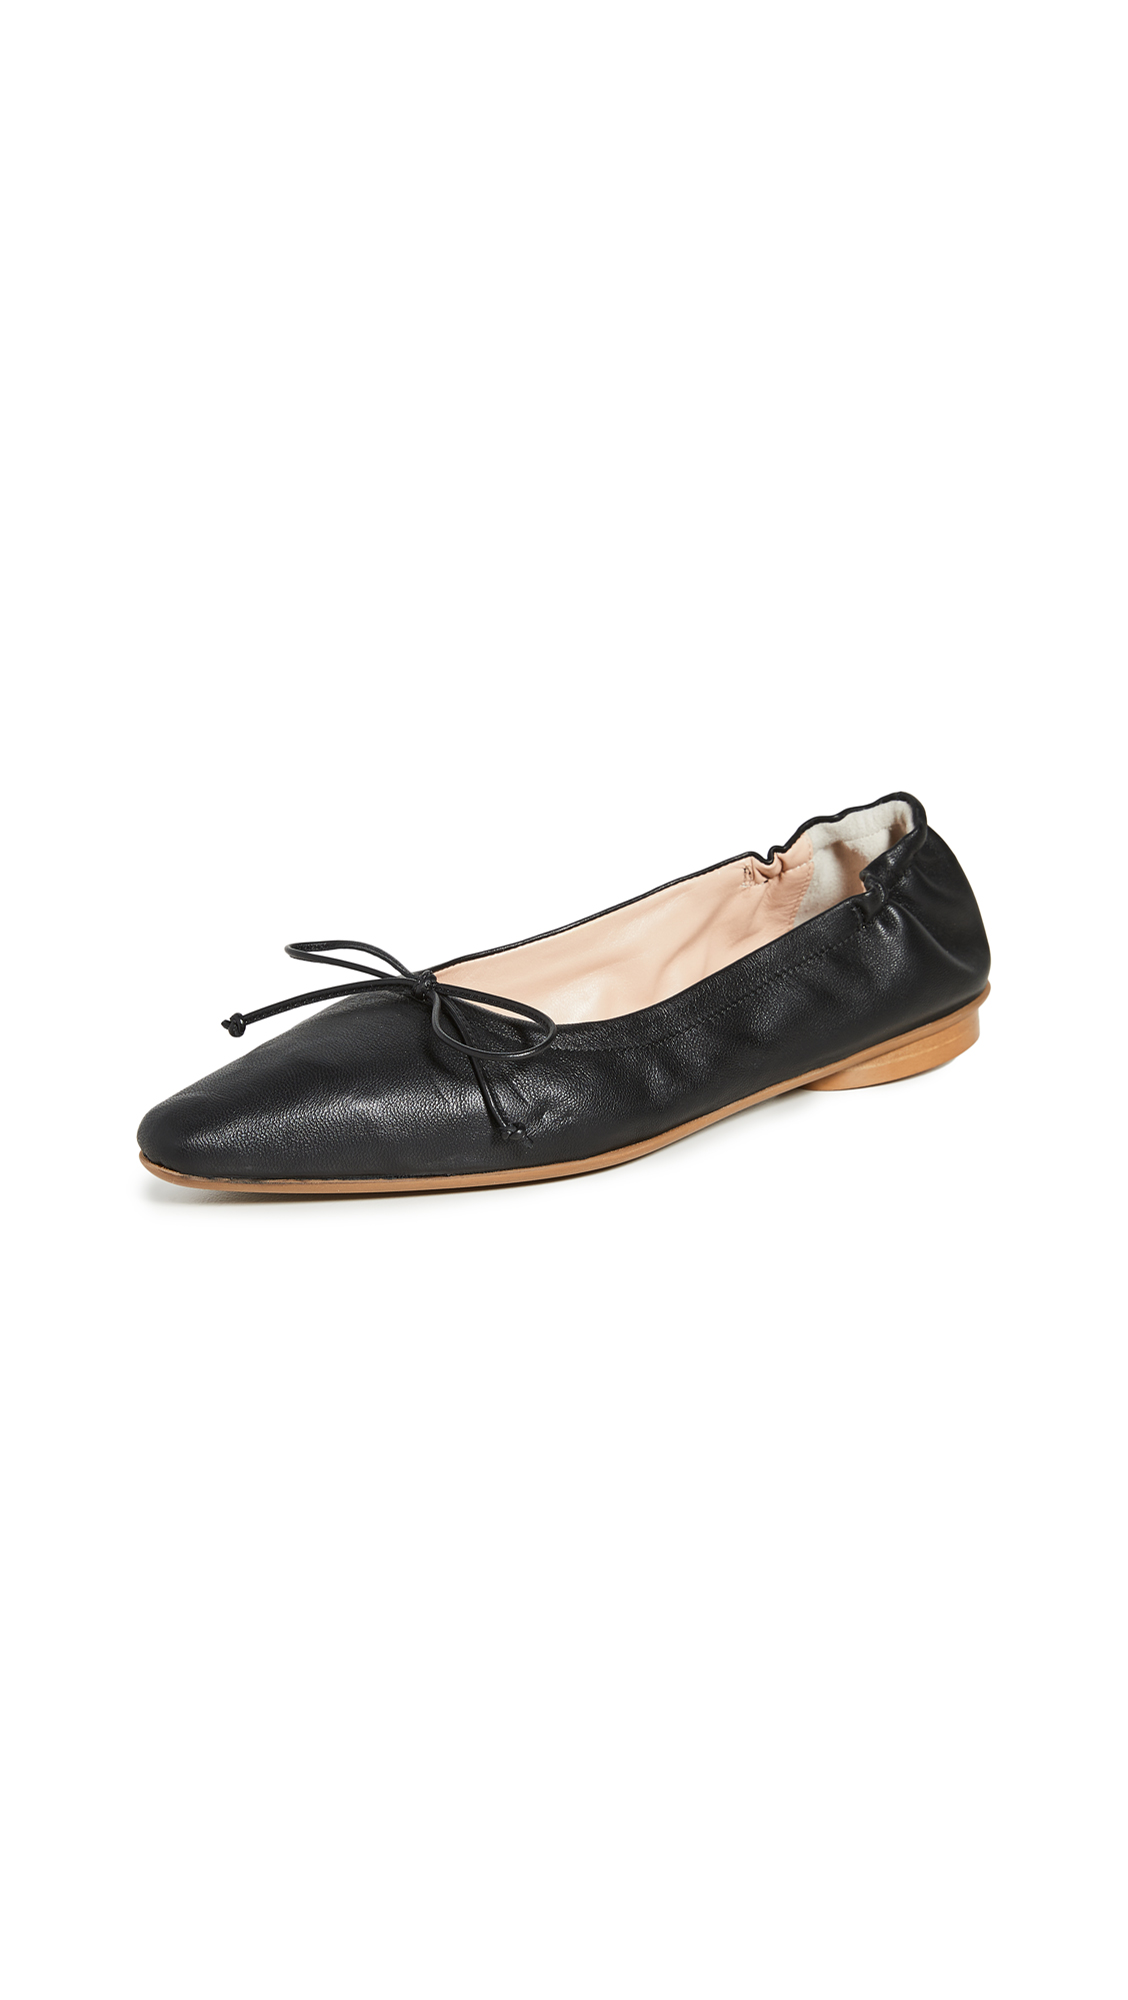 Buy Club Monaco Peechie Flats online, shop Club Monaco